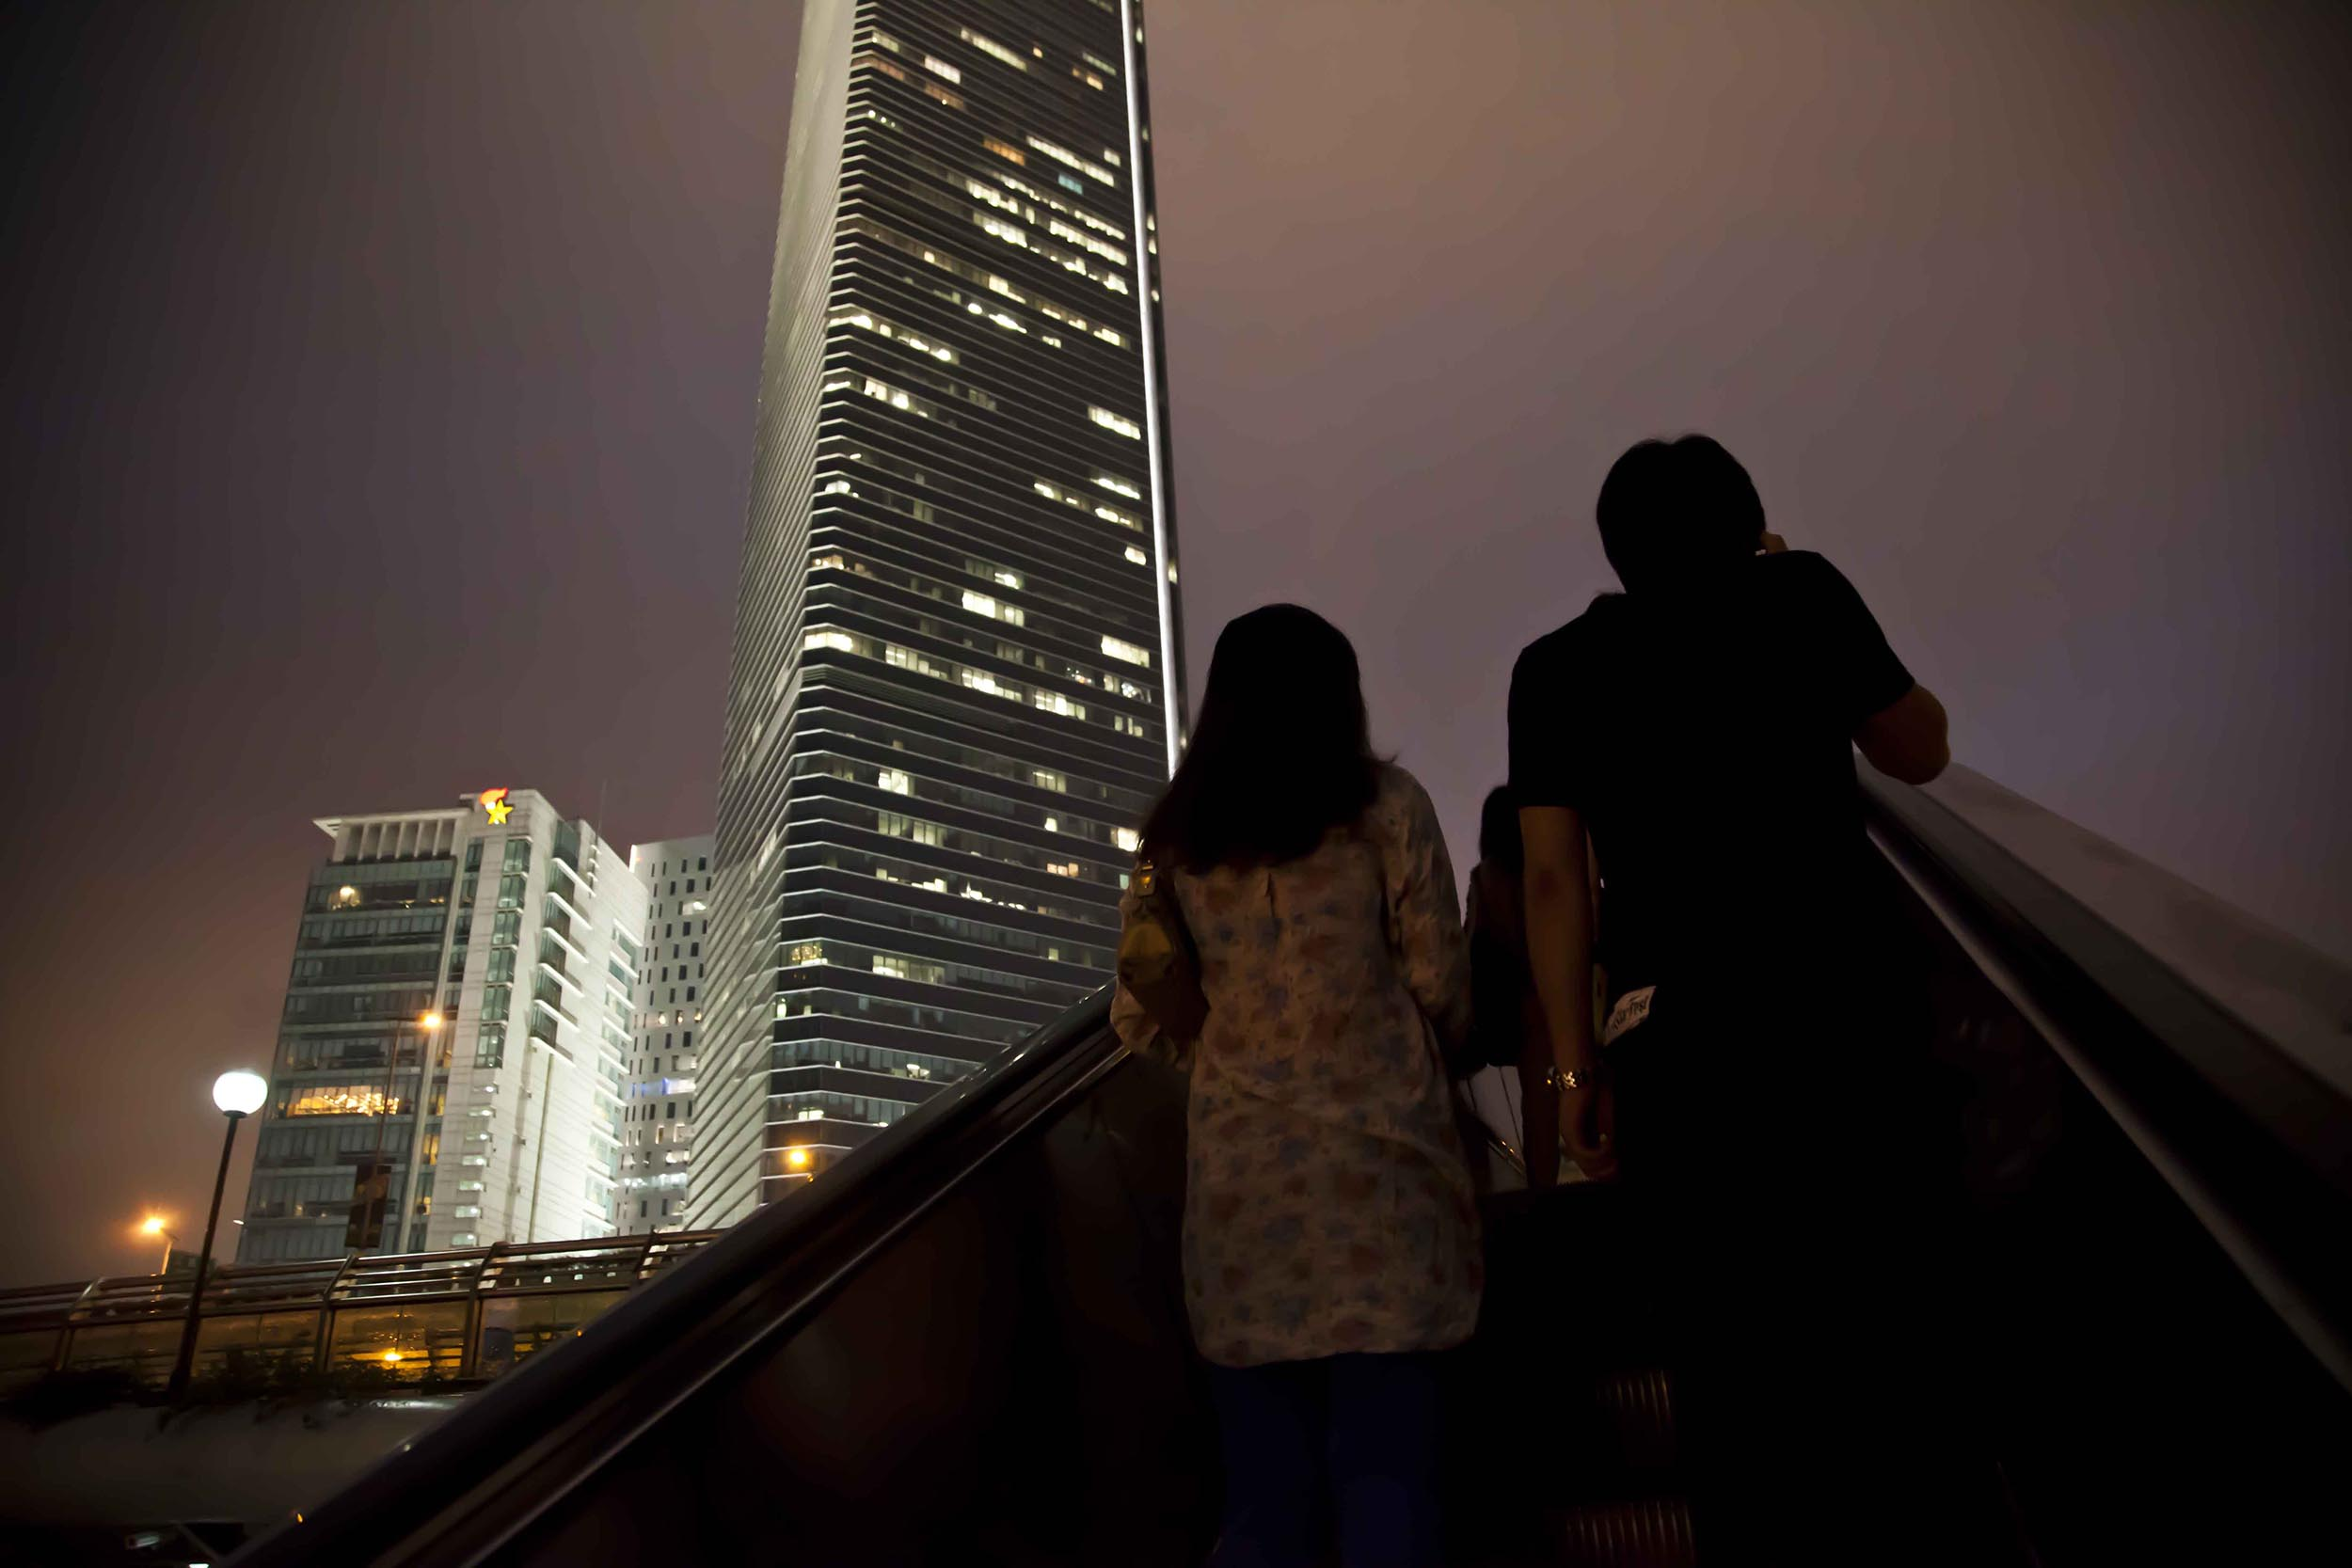 A photograph of people on an escalator at night Shanghai, China  Photography for personal project